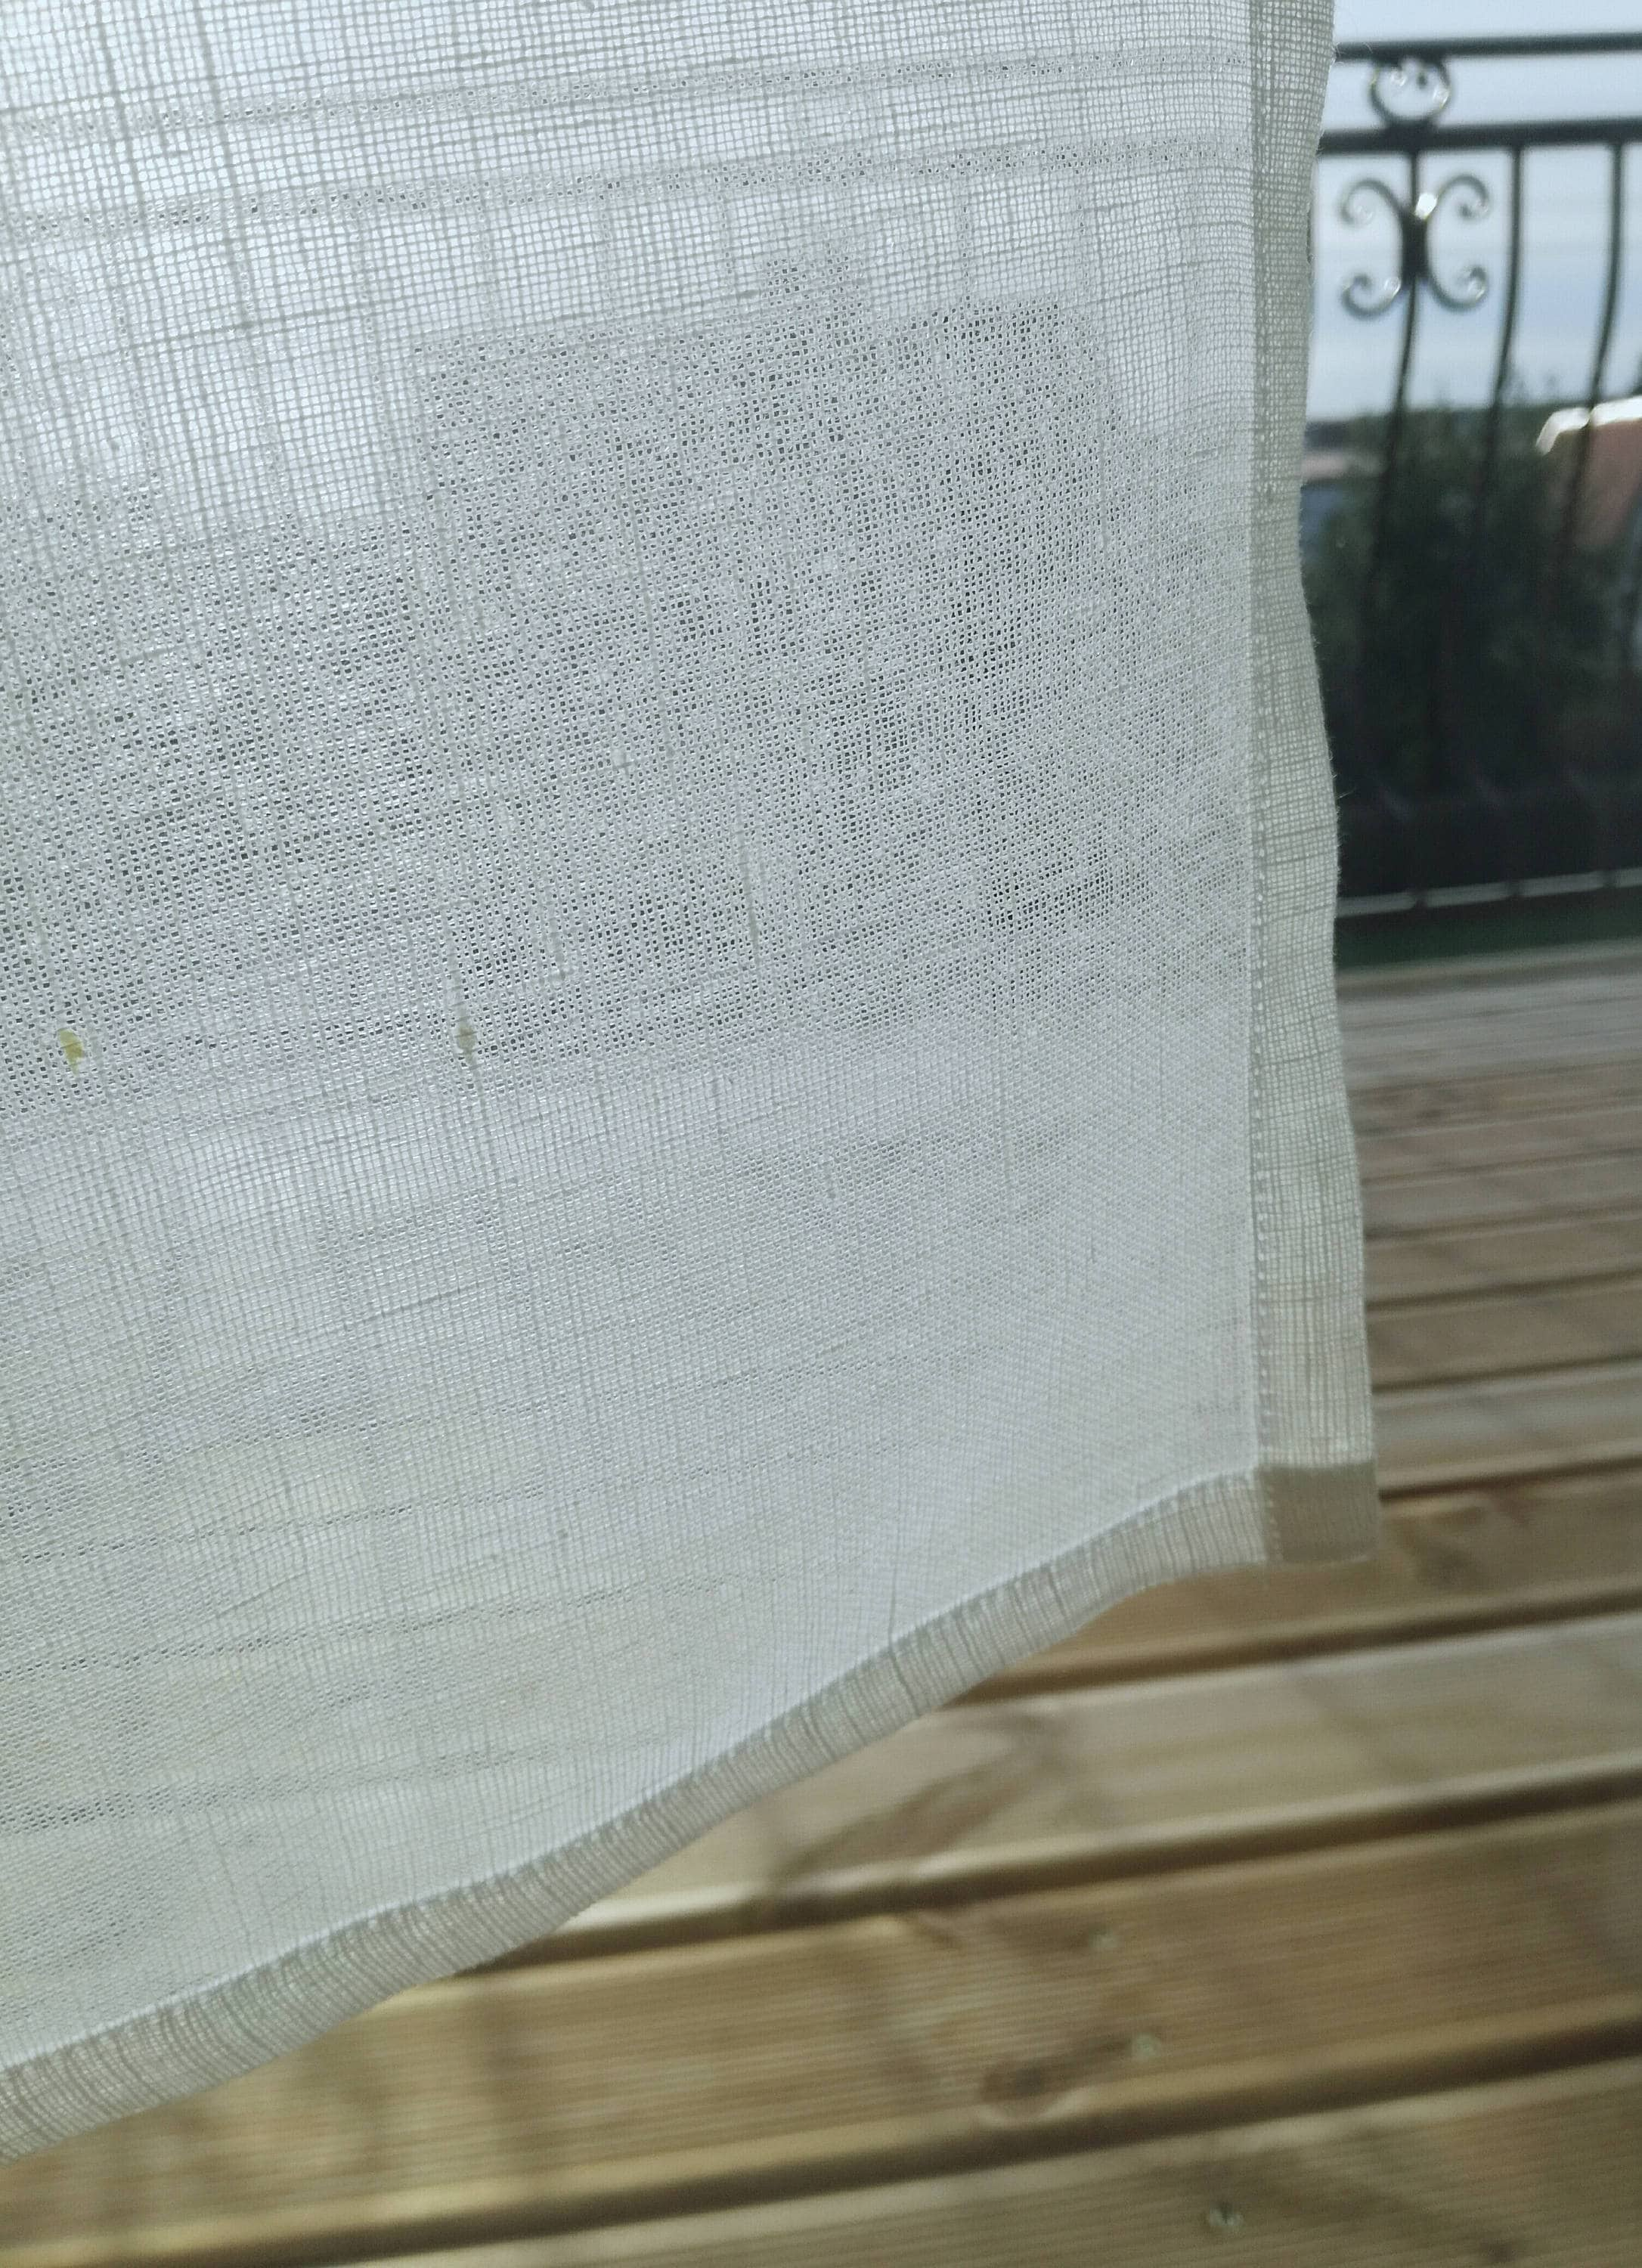 Natural Linen Curtain Sheer Linen Curtain Sea House Window Linen Curtain Kitchen Panel Light Privacy Window Shad Cafe Linen Curtain